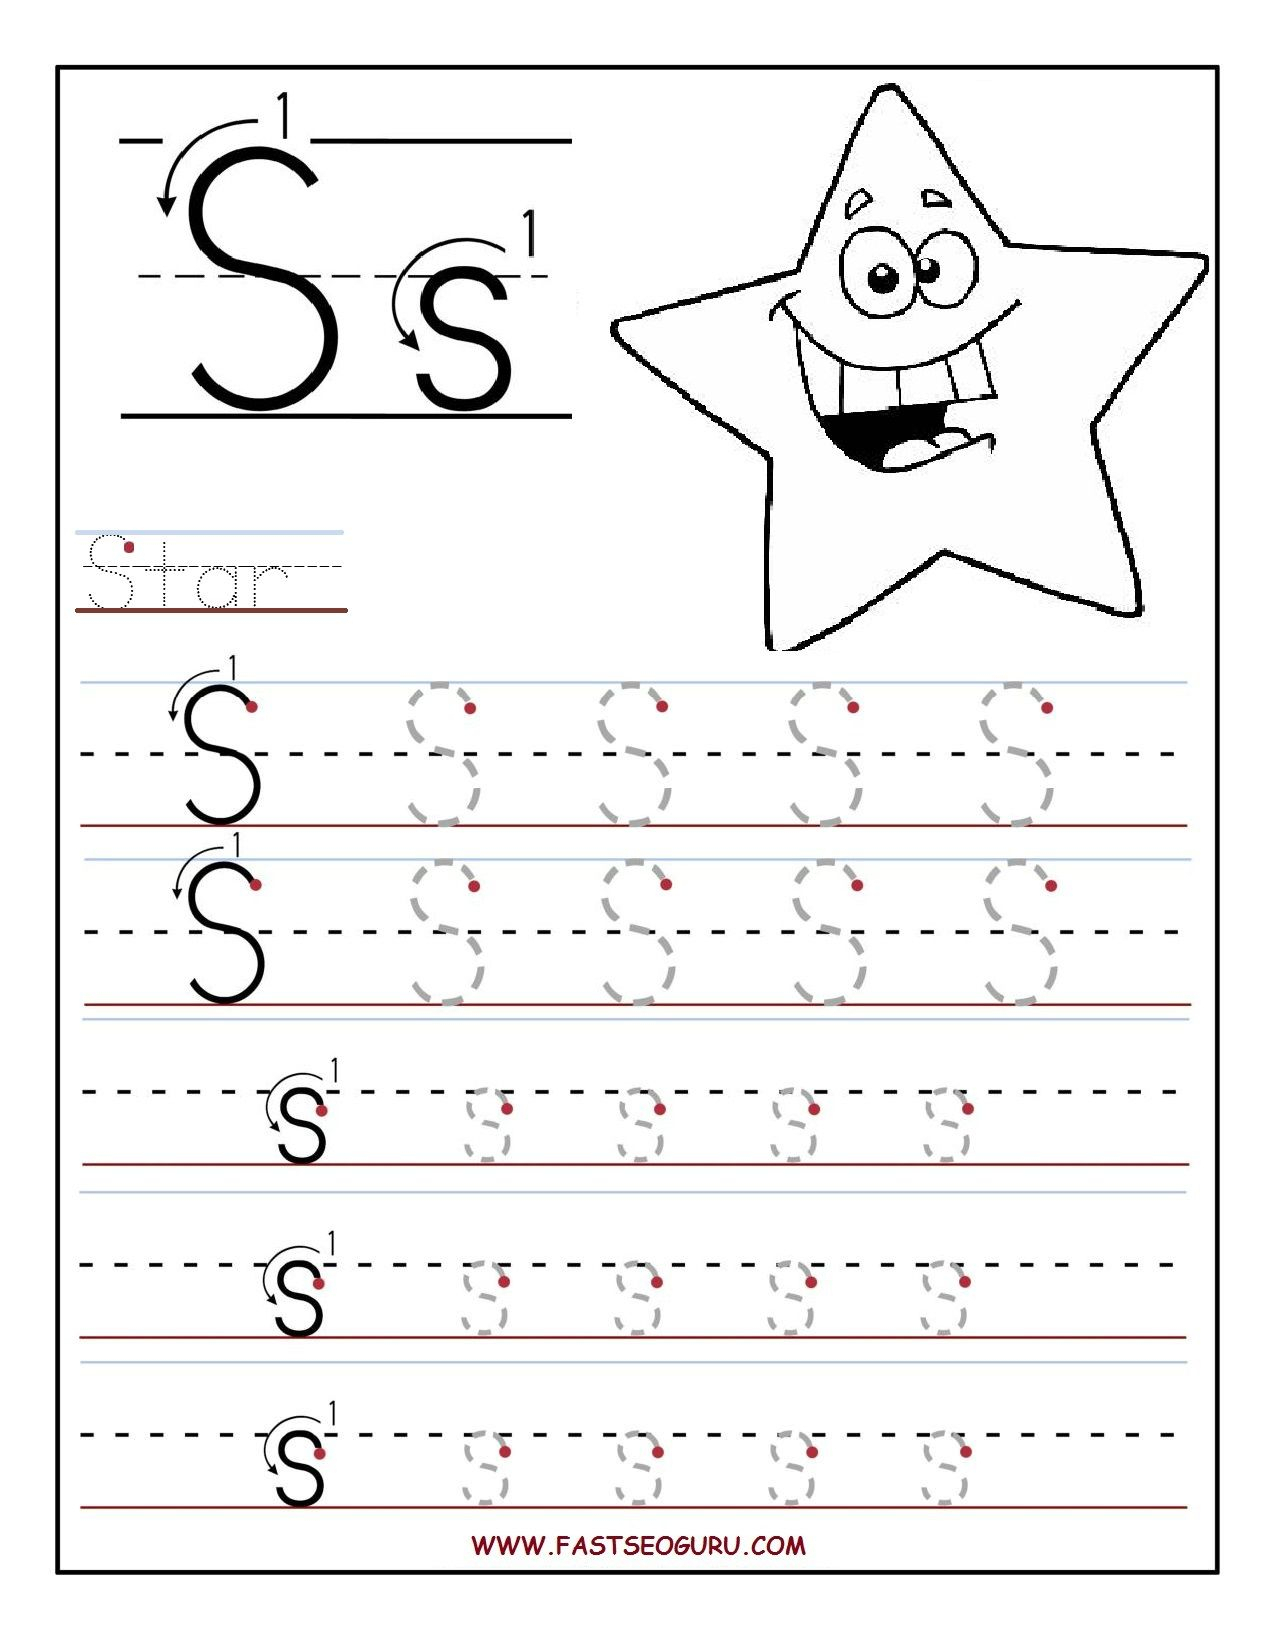 Printable Cursive Alphabet Worksheets Abitlikethis regarding Printable Tracing Letters For Pre K